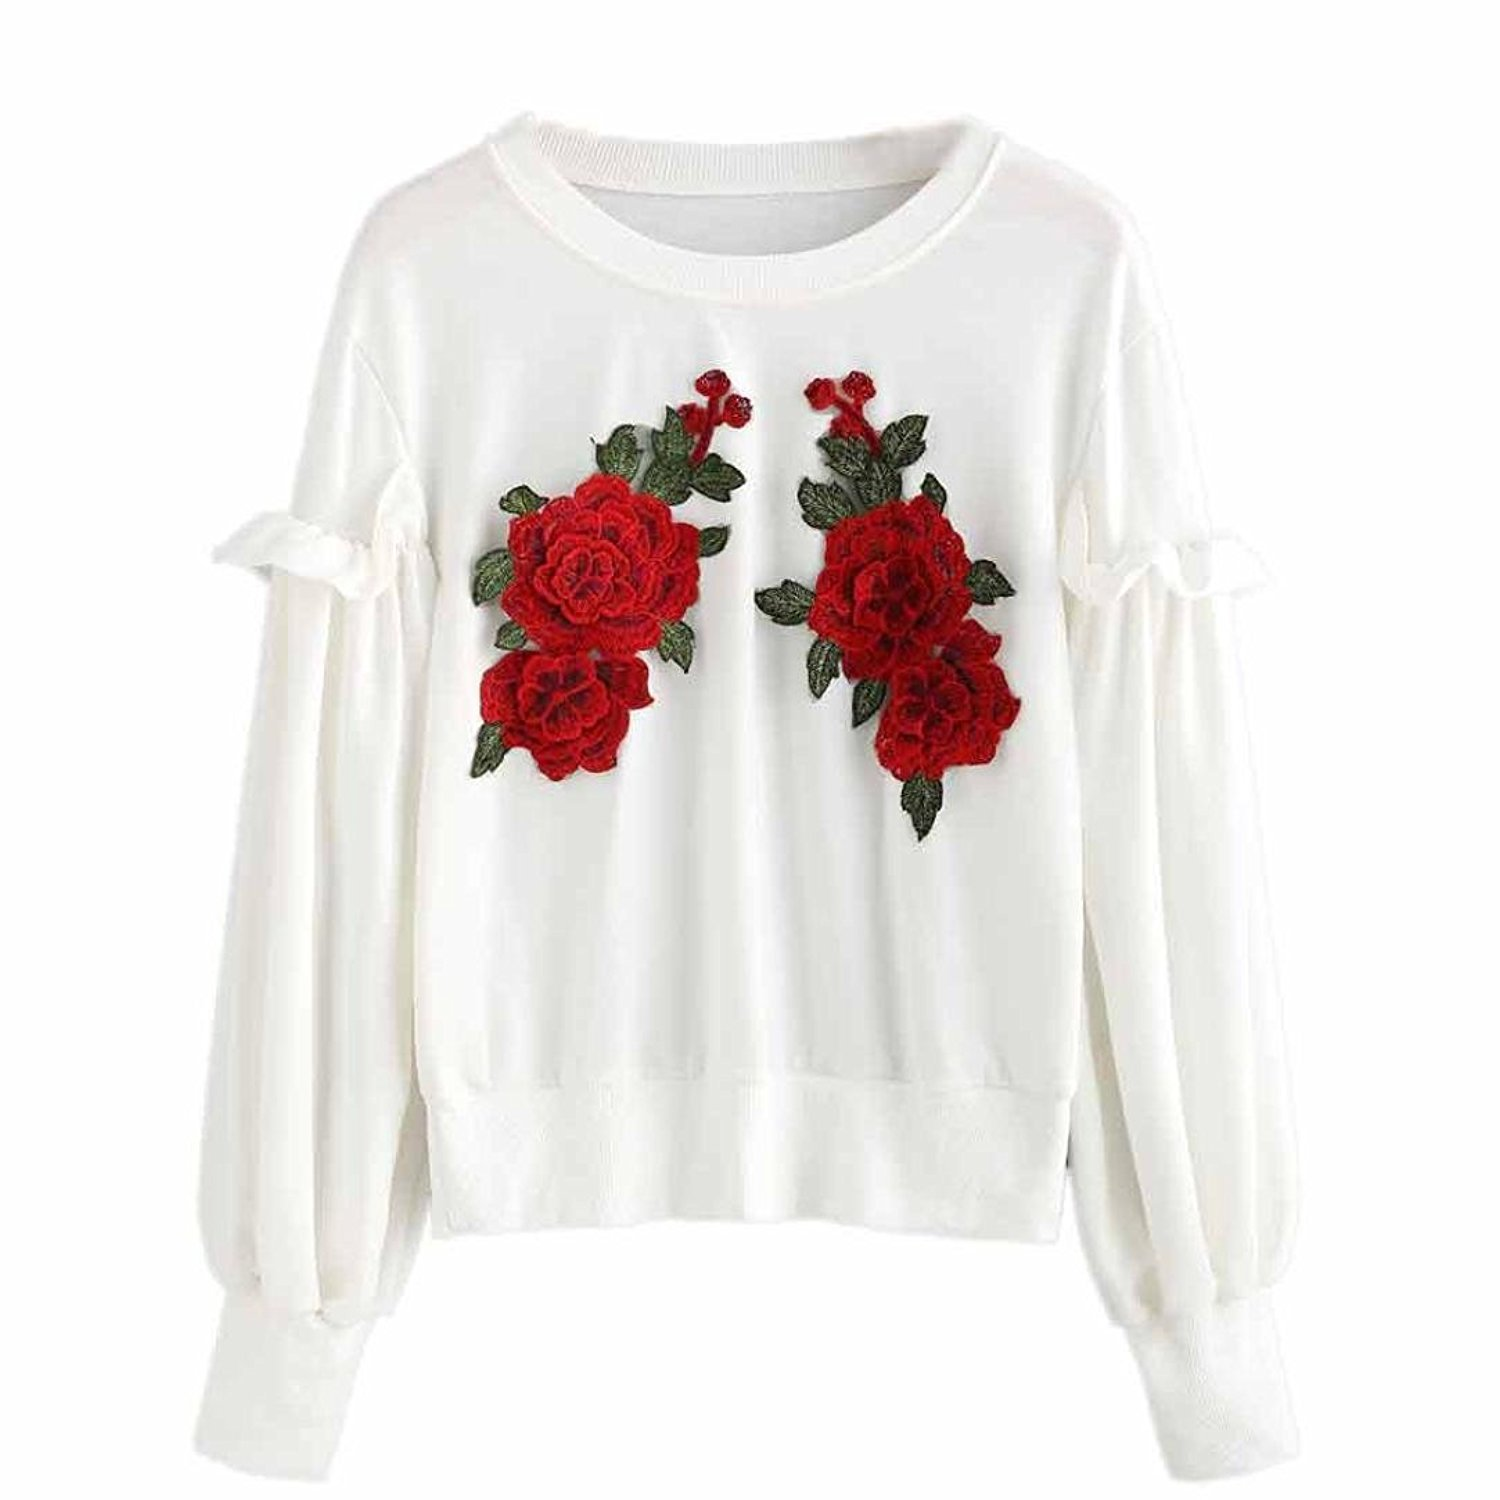 Autumn& Winter Clothing, Fulltime(TM) Womens Embroidery Pullover Long Sleeve Blouse YXP70912644